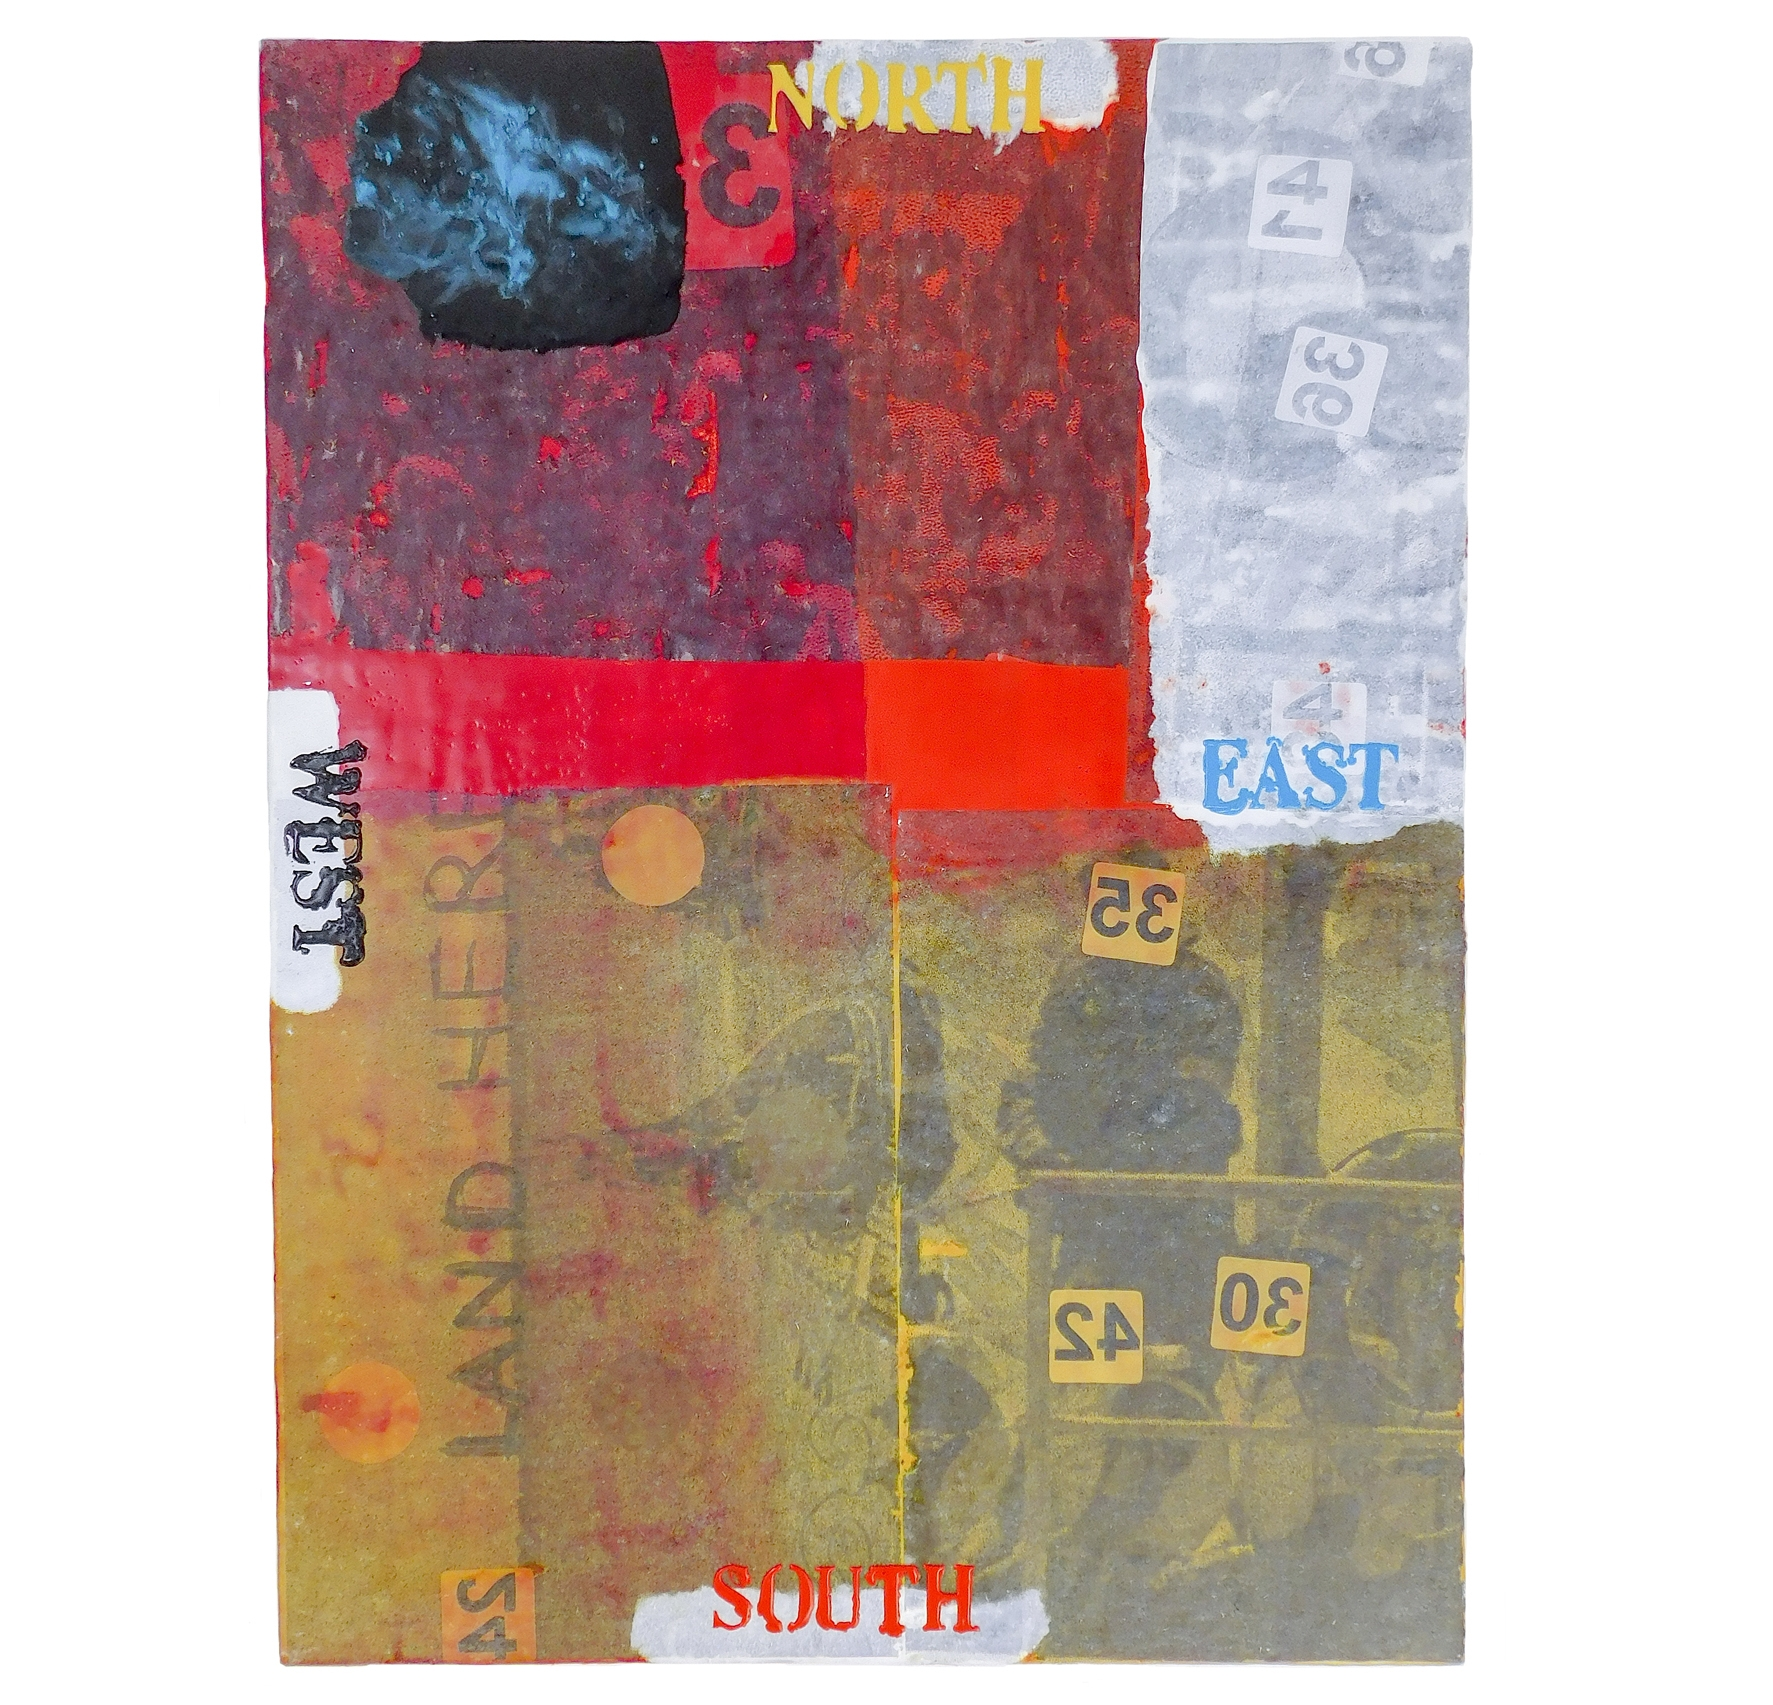 Refugeez! - 4 - 26 June 2016 | Hurstville Museum & GalleryRandal Arvilla's North, East, South, West (encaustic and oil painting on board, 76 x 56cm) was included in the Refugeez! exhibition celebrating Australia's National Refugee Week (19-25 June 2016). The exhibition was organized by Hurstville City Council and Advance Diversity Services and took place at the Dragon's Lair Gallery in Hurstville Museum & Gallery.